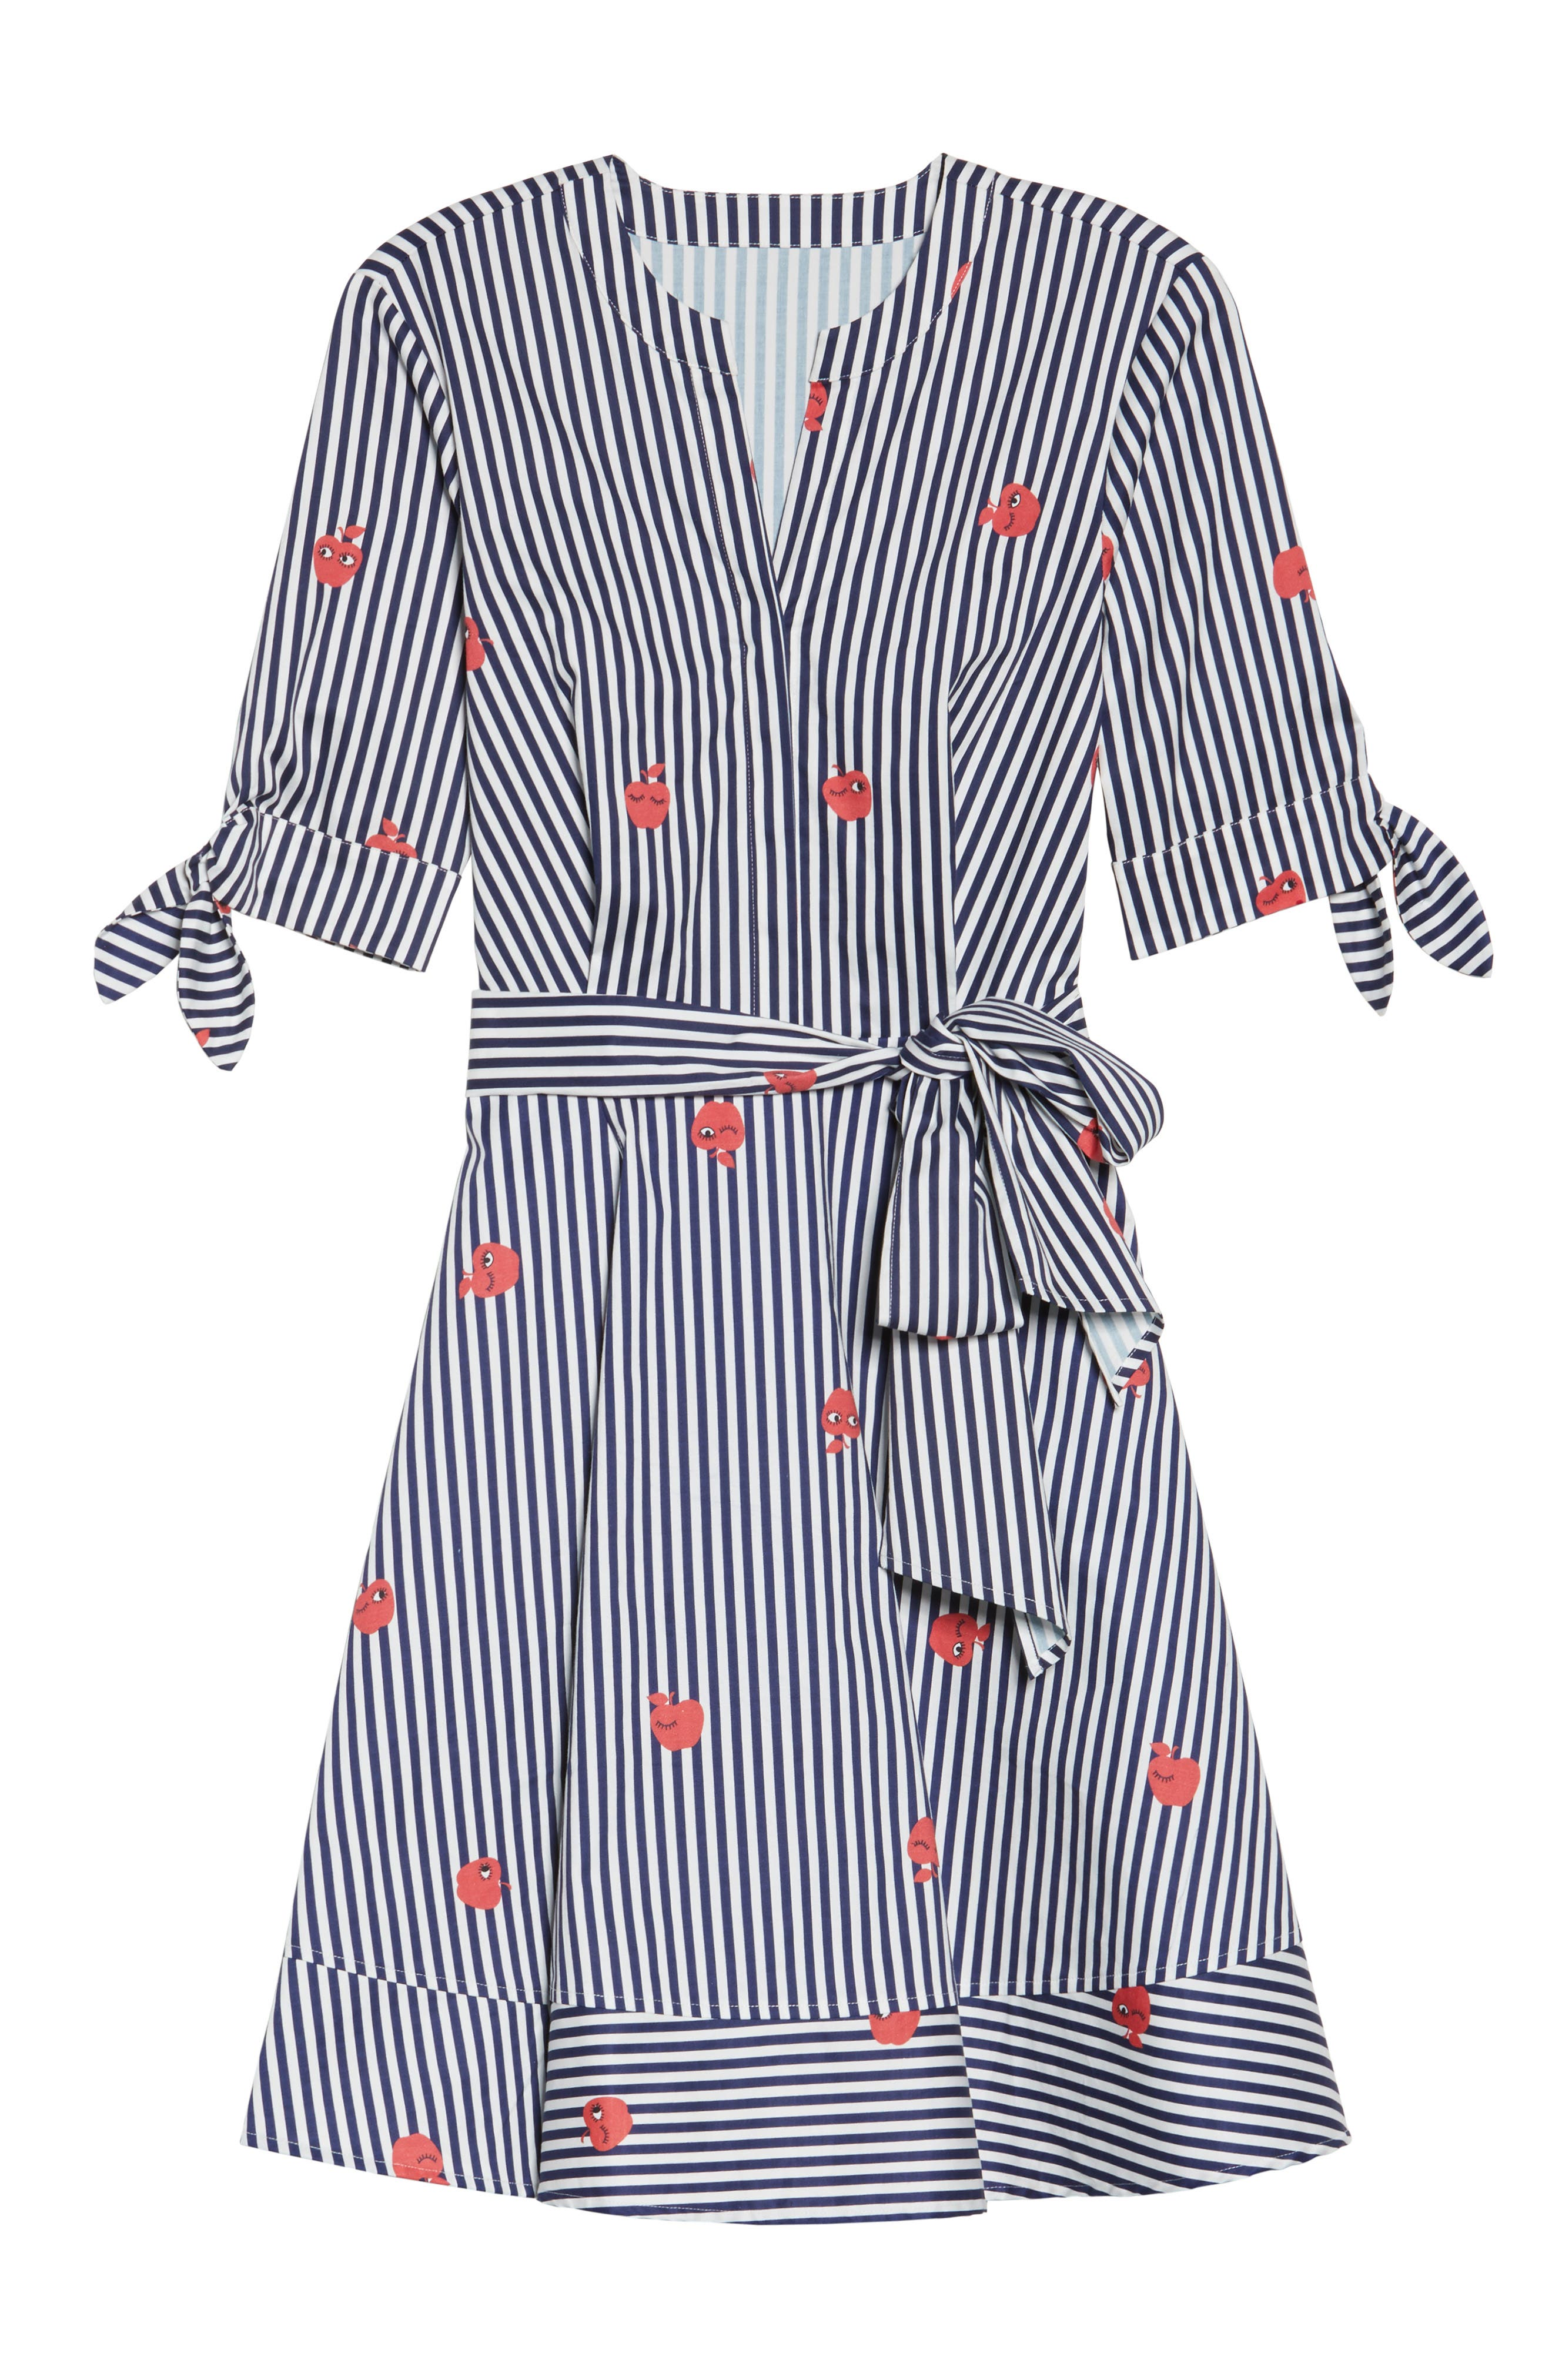 Bella Tie Front Fit & Flare Shirtdress,                             Alternate thumbnail 6, color,                             413